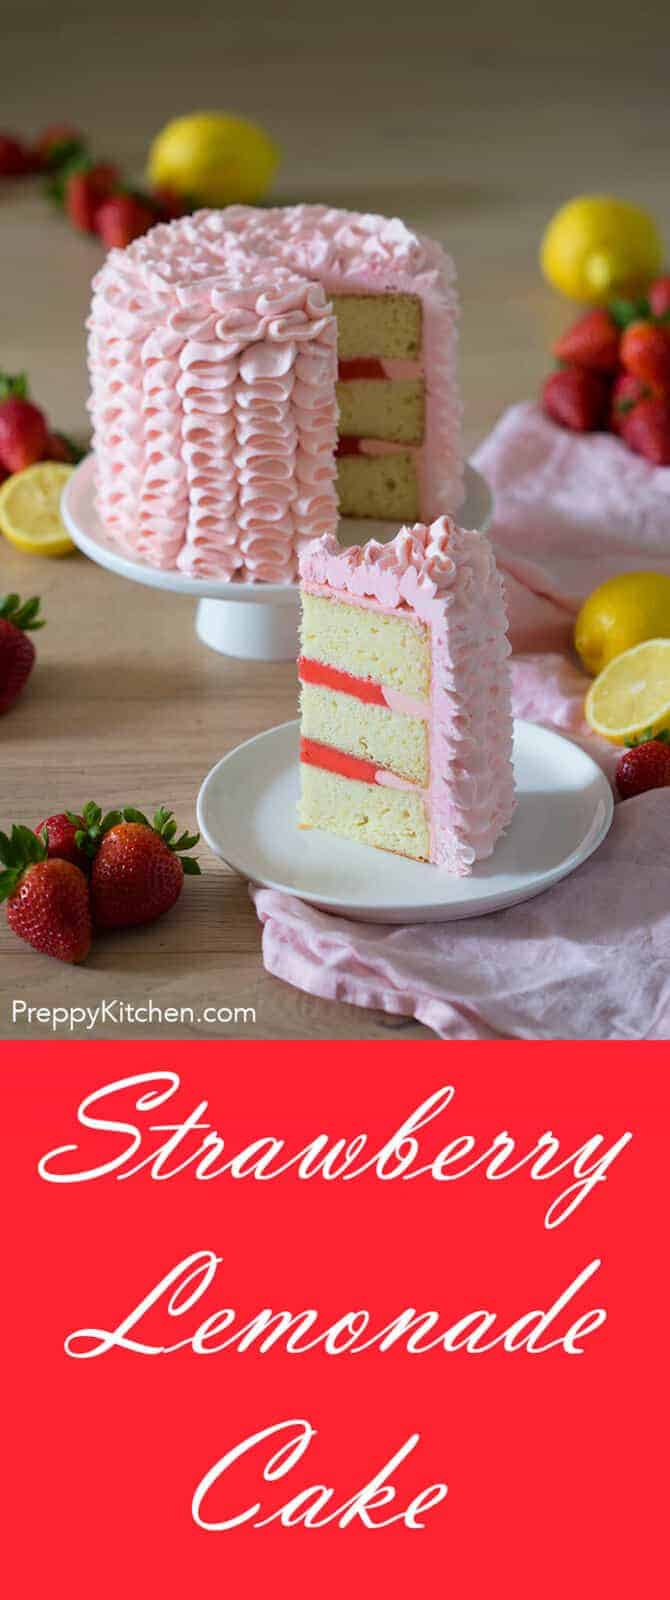 This moist lemon cake is filled with a delicious strawberry curd and covered in creamy Swiss meringue buttercream flavored with a strawberry reduction. It might be the perfect cake for a warm summer day!